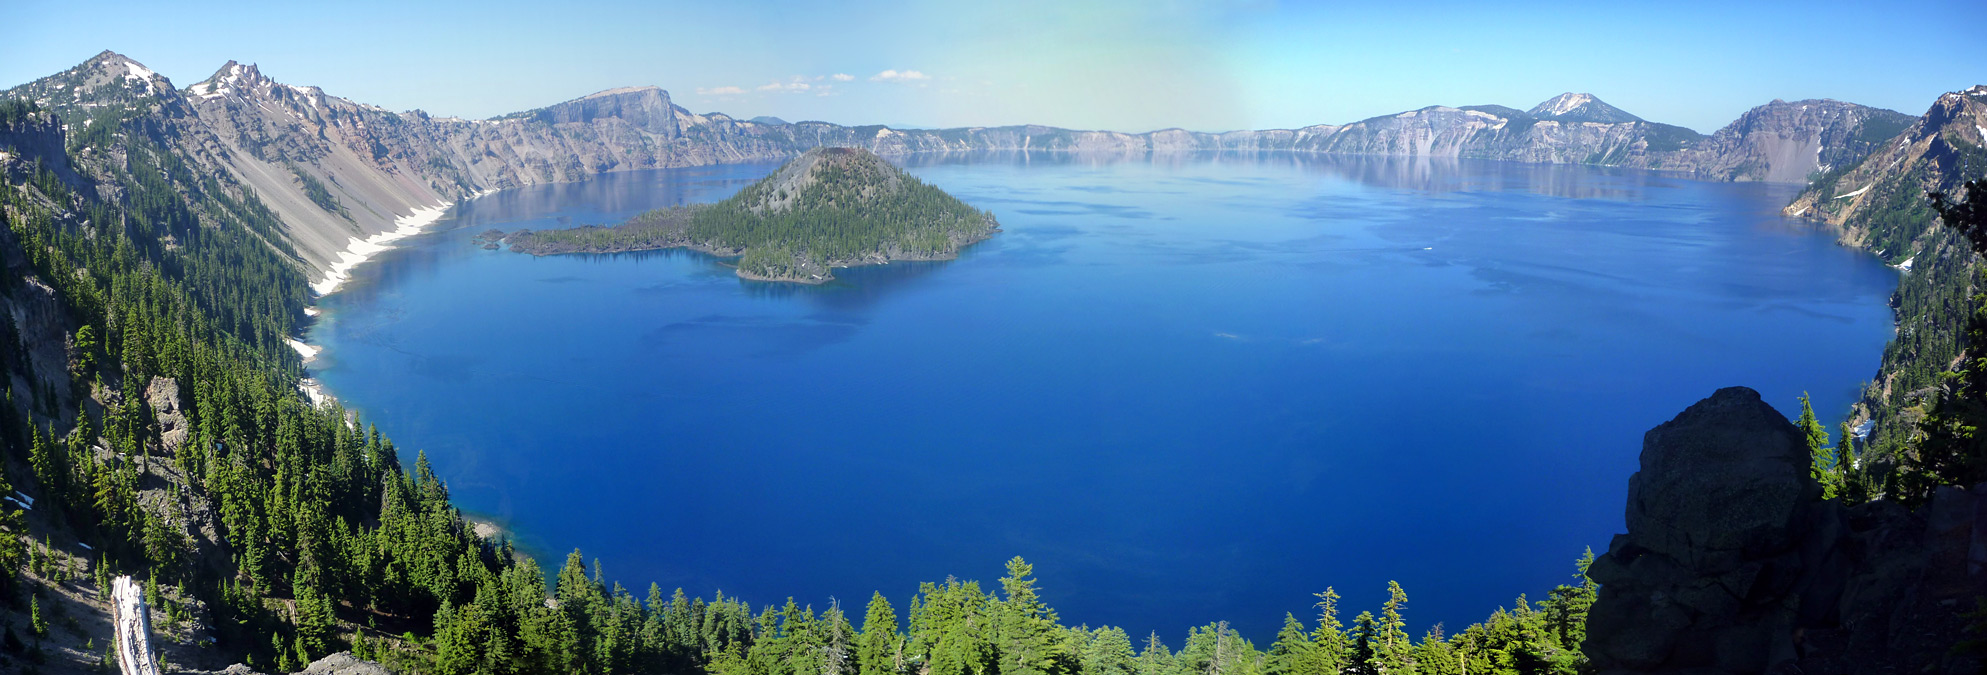 Crater Lake National Park clipart #3, Download drawings